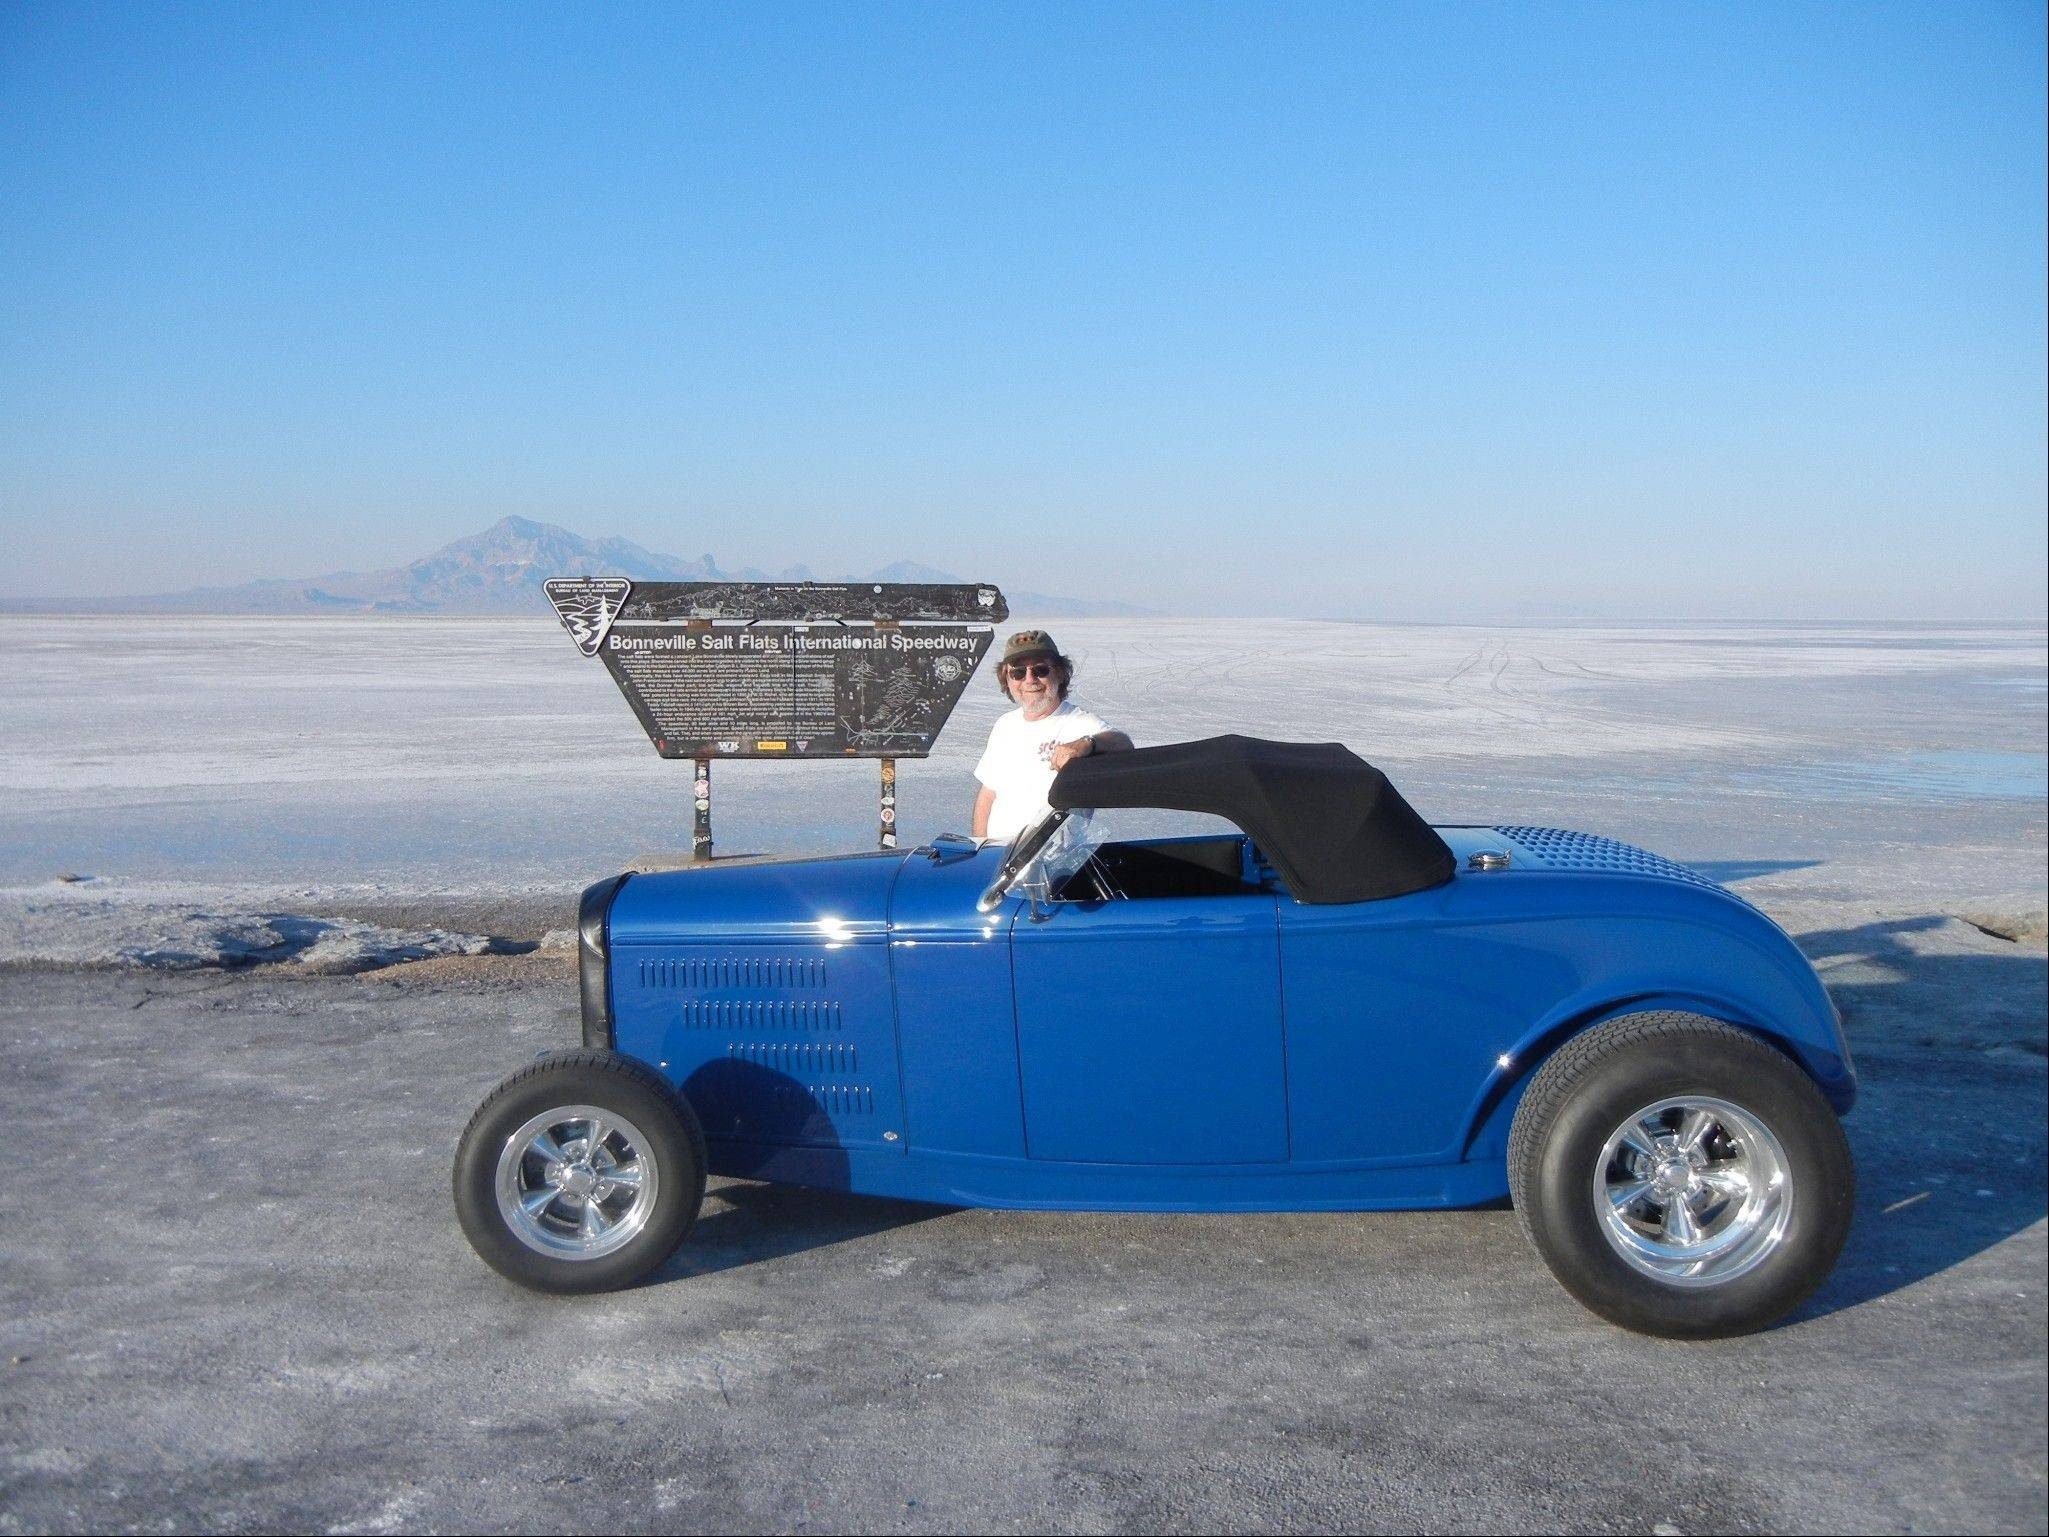 Heidt fulfilled a longtime dream when he drove on the Bonneville Salt Flats in Utah.